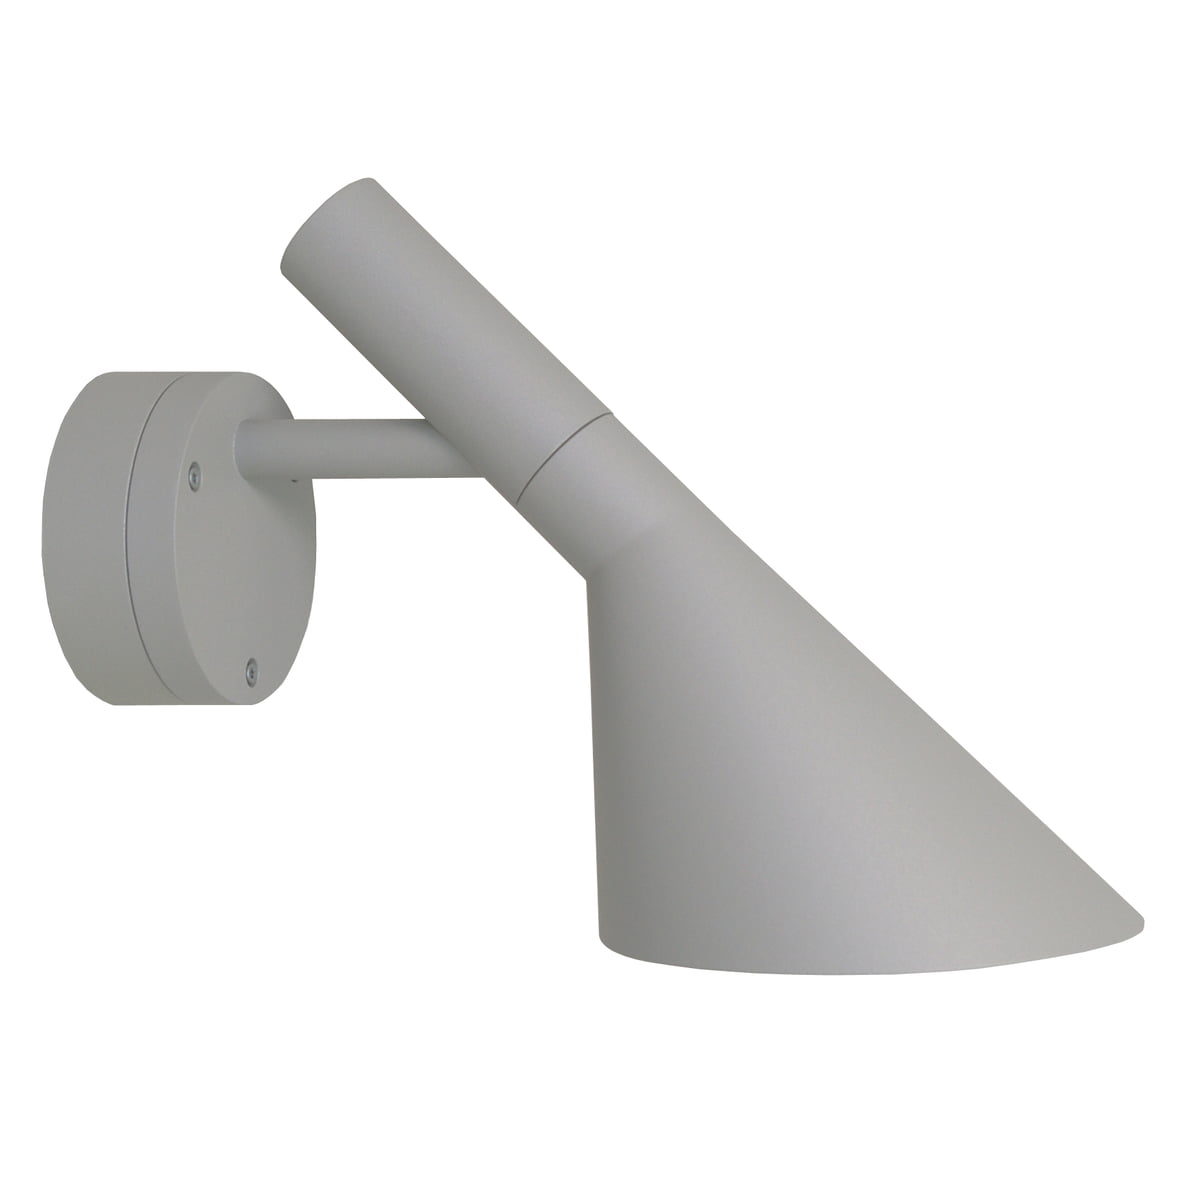 Outdoor Wall Lamps Led : AJ Outdoor wall light LED by Louis Poulsen